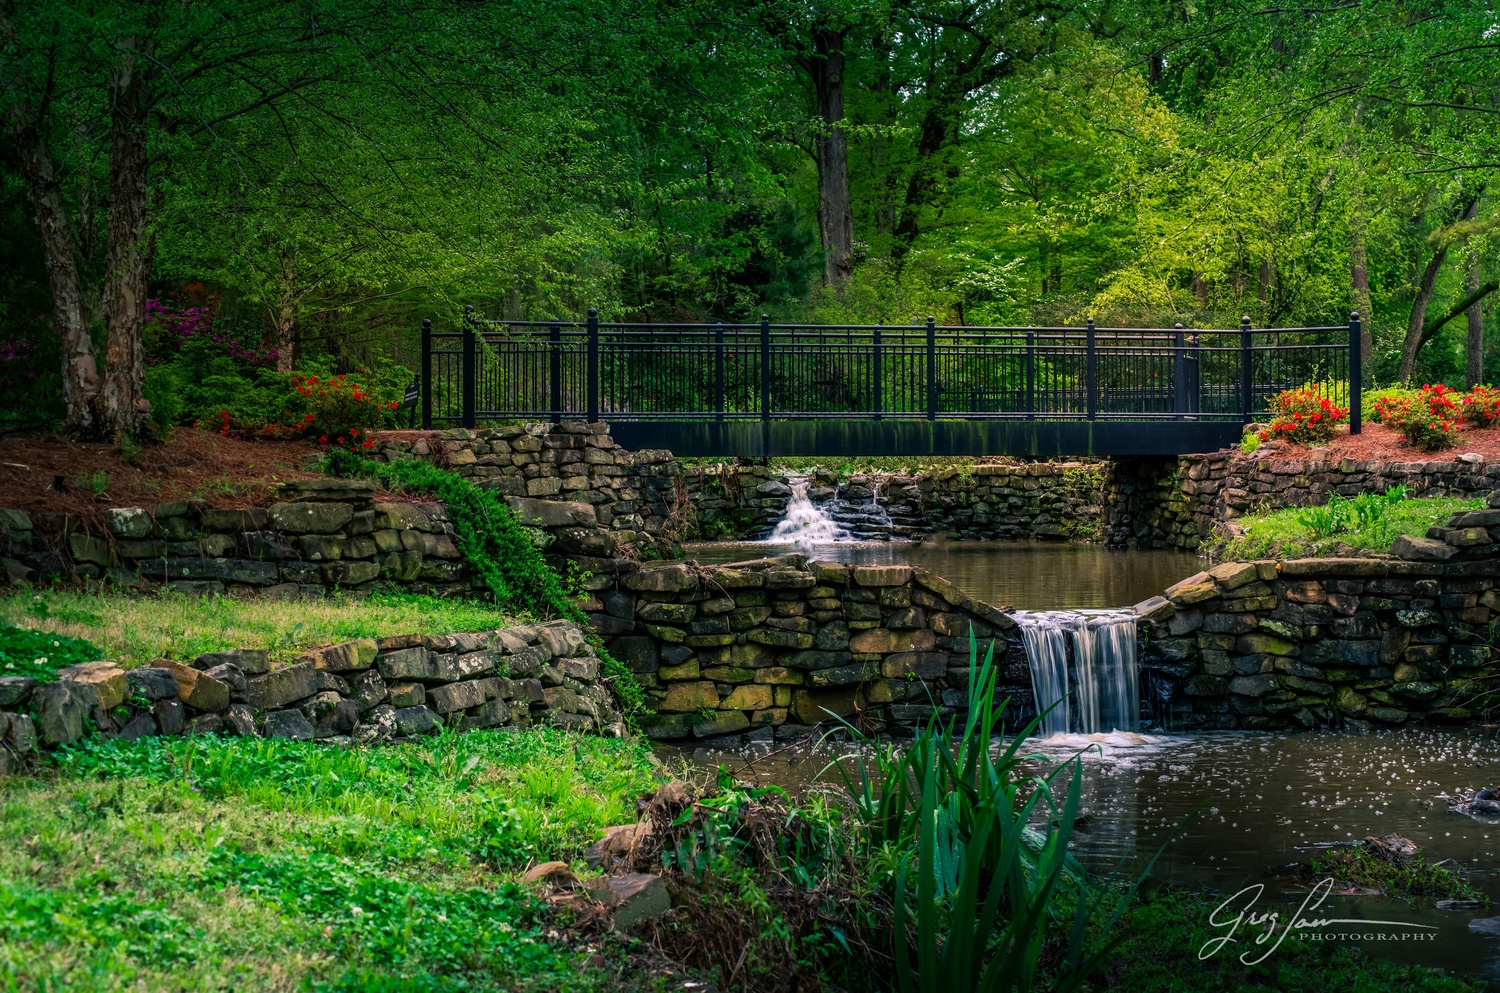 Tranquility Crossing by Greg Sarver